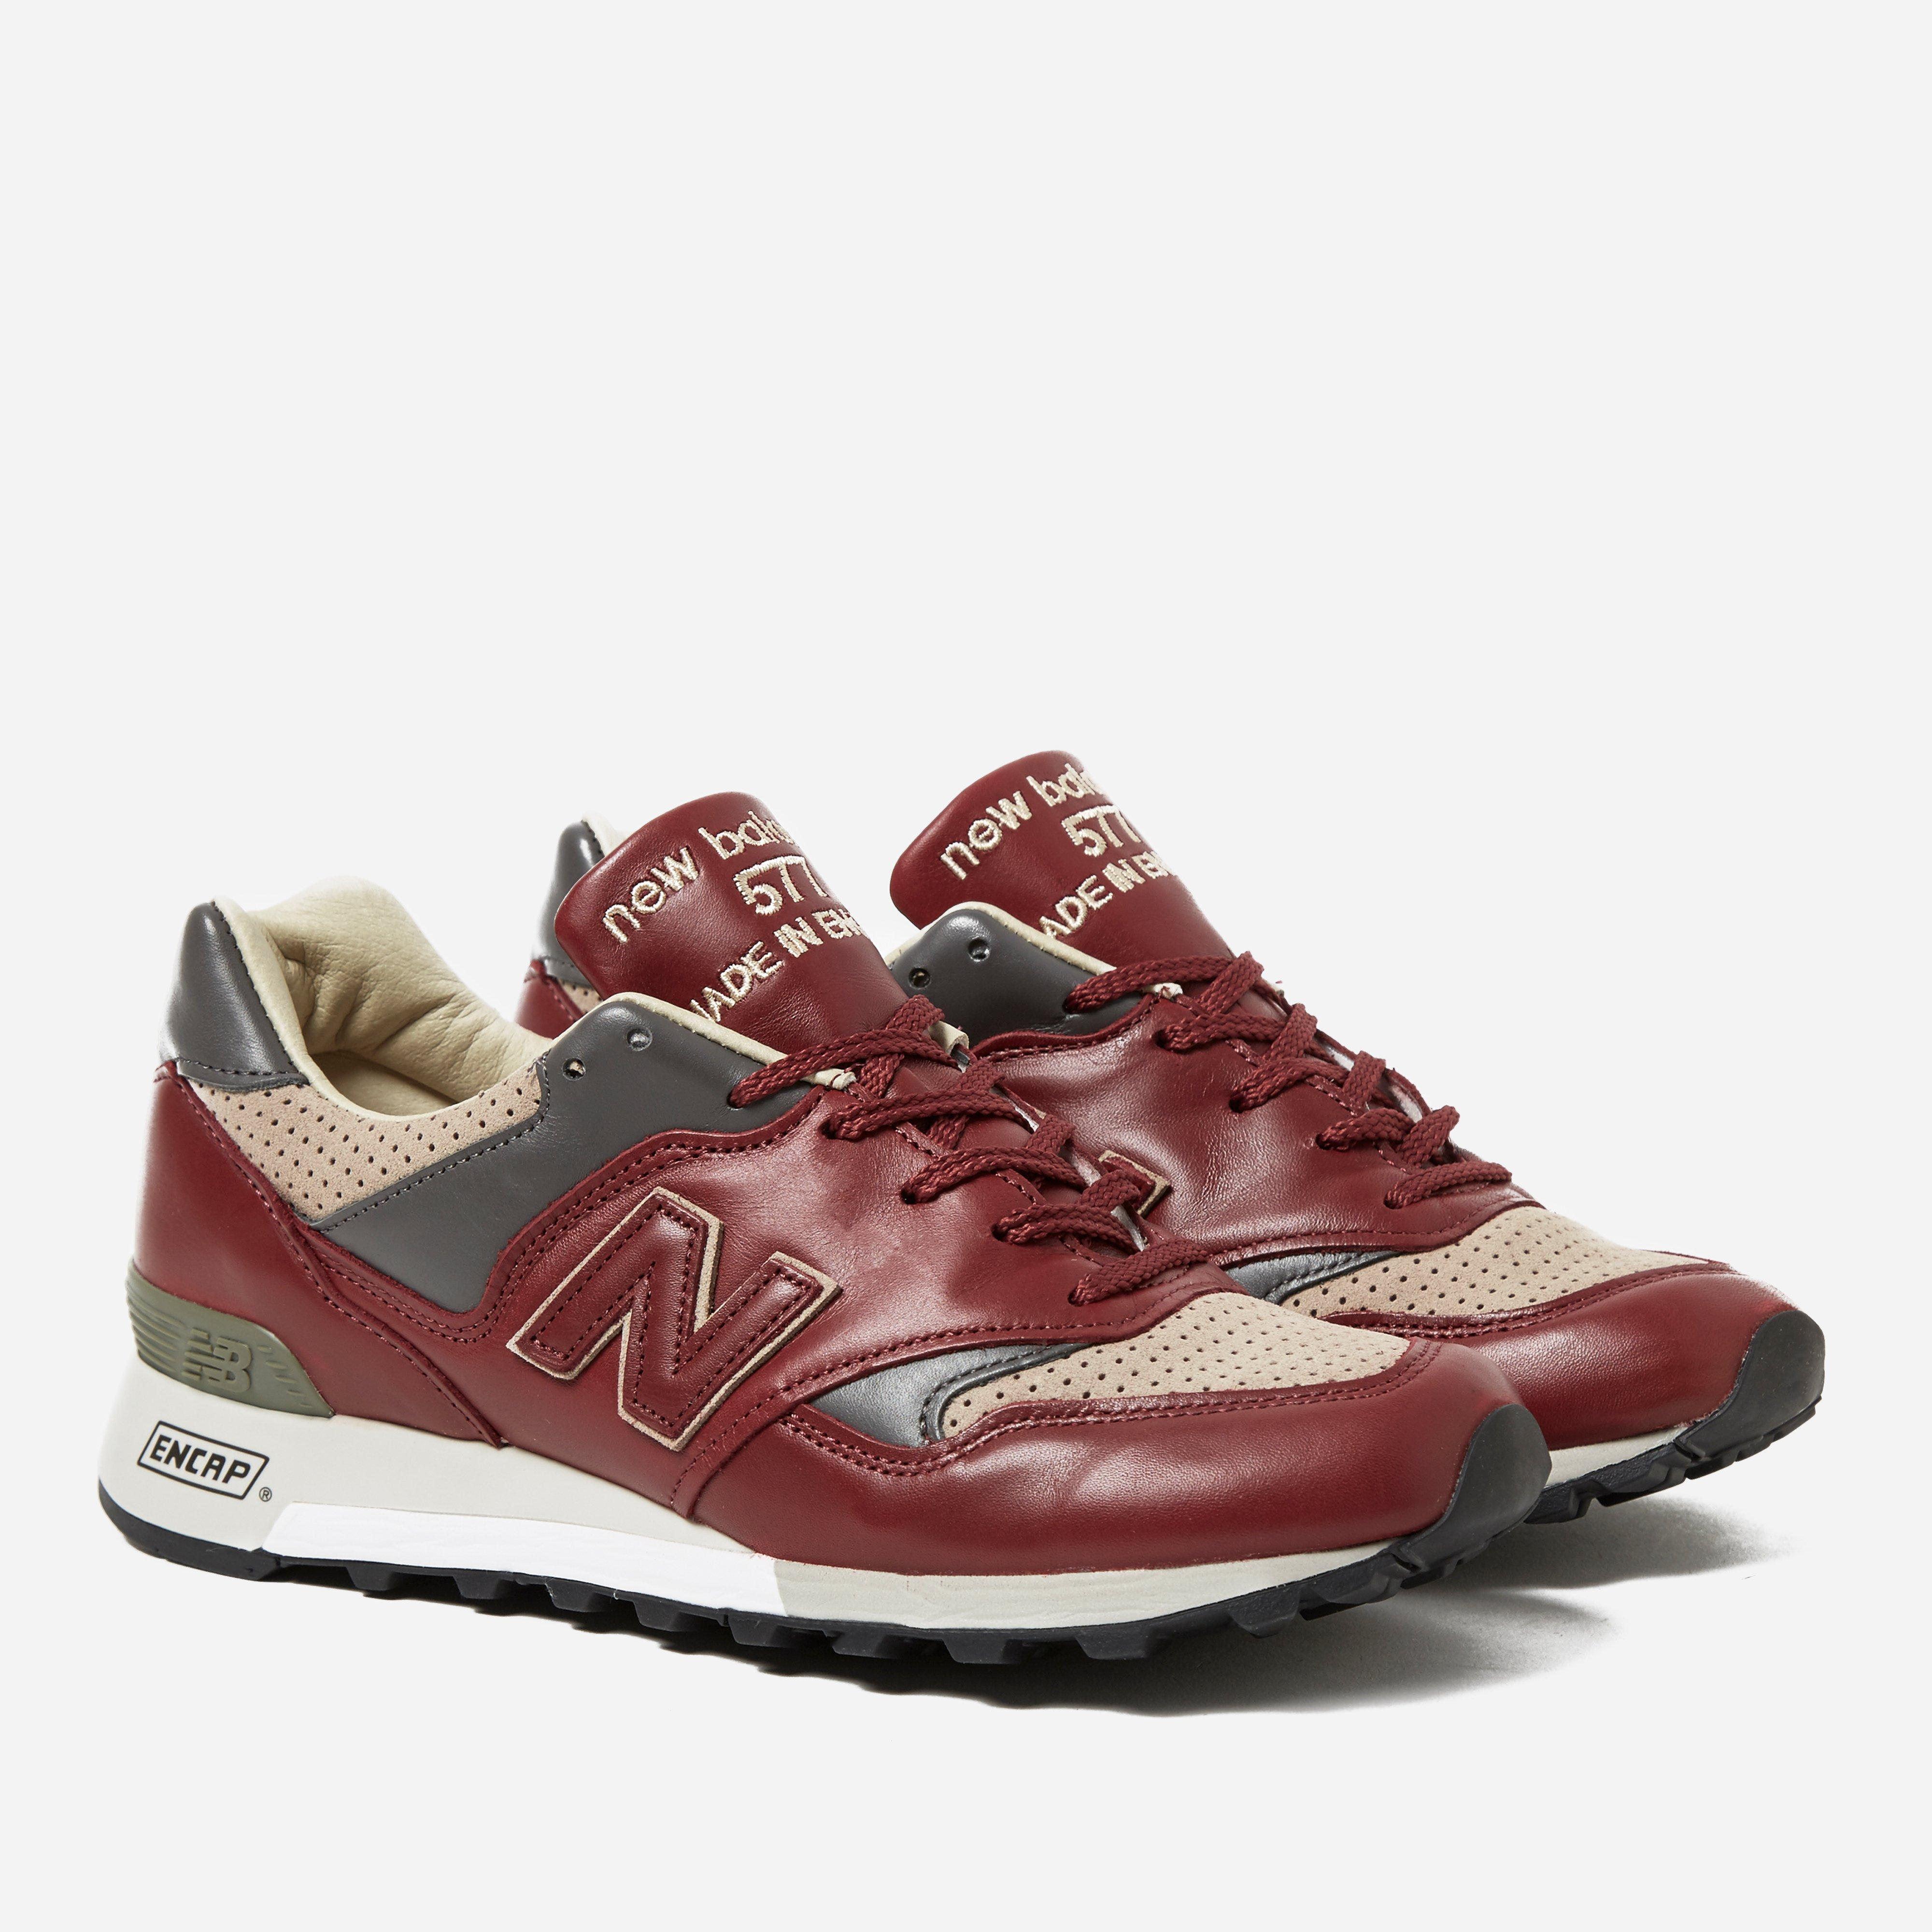 New Balance M577LBT Made In England